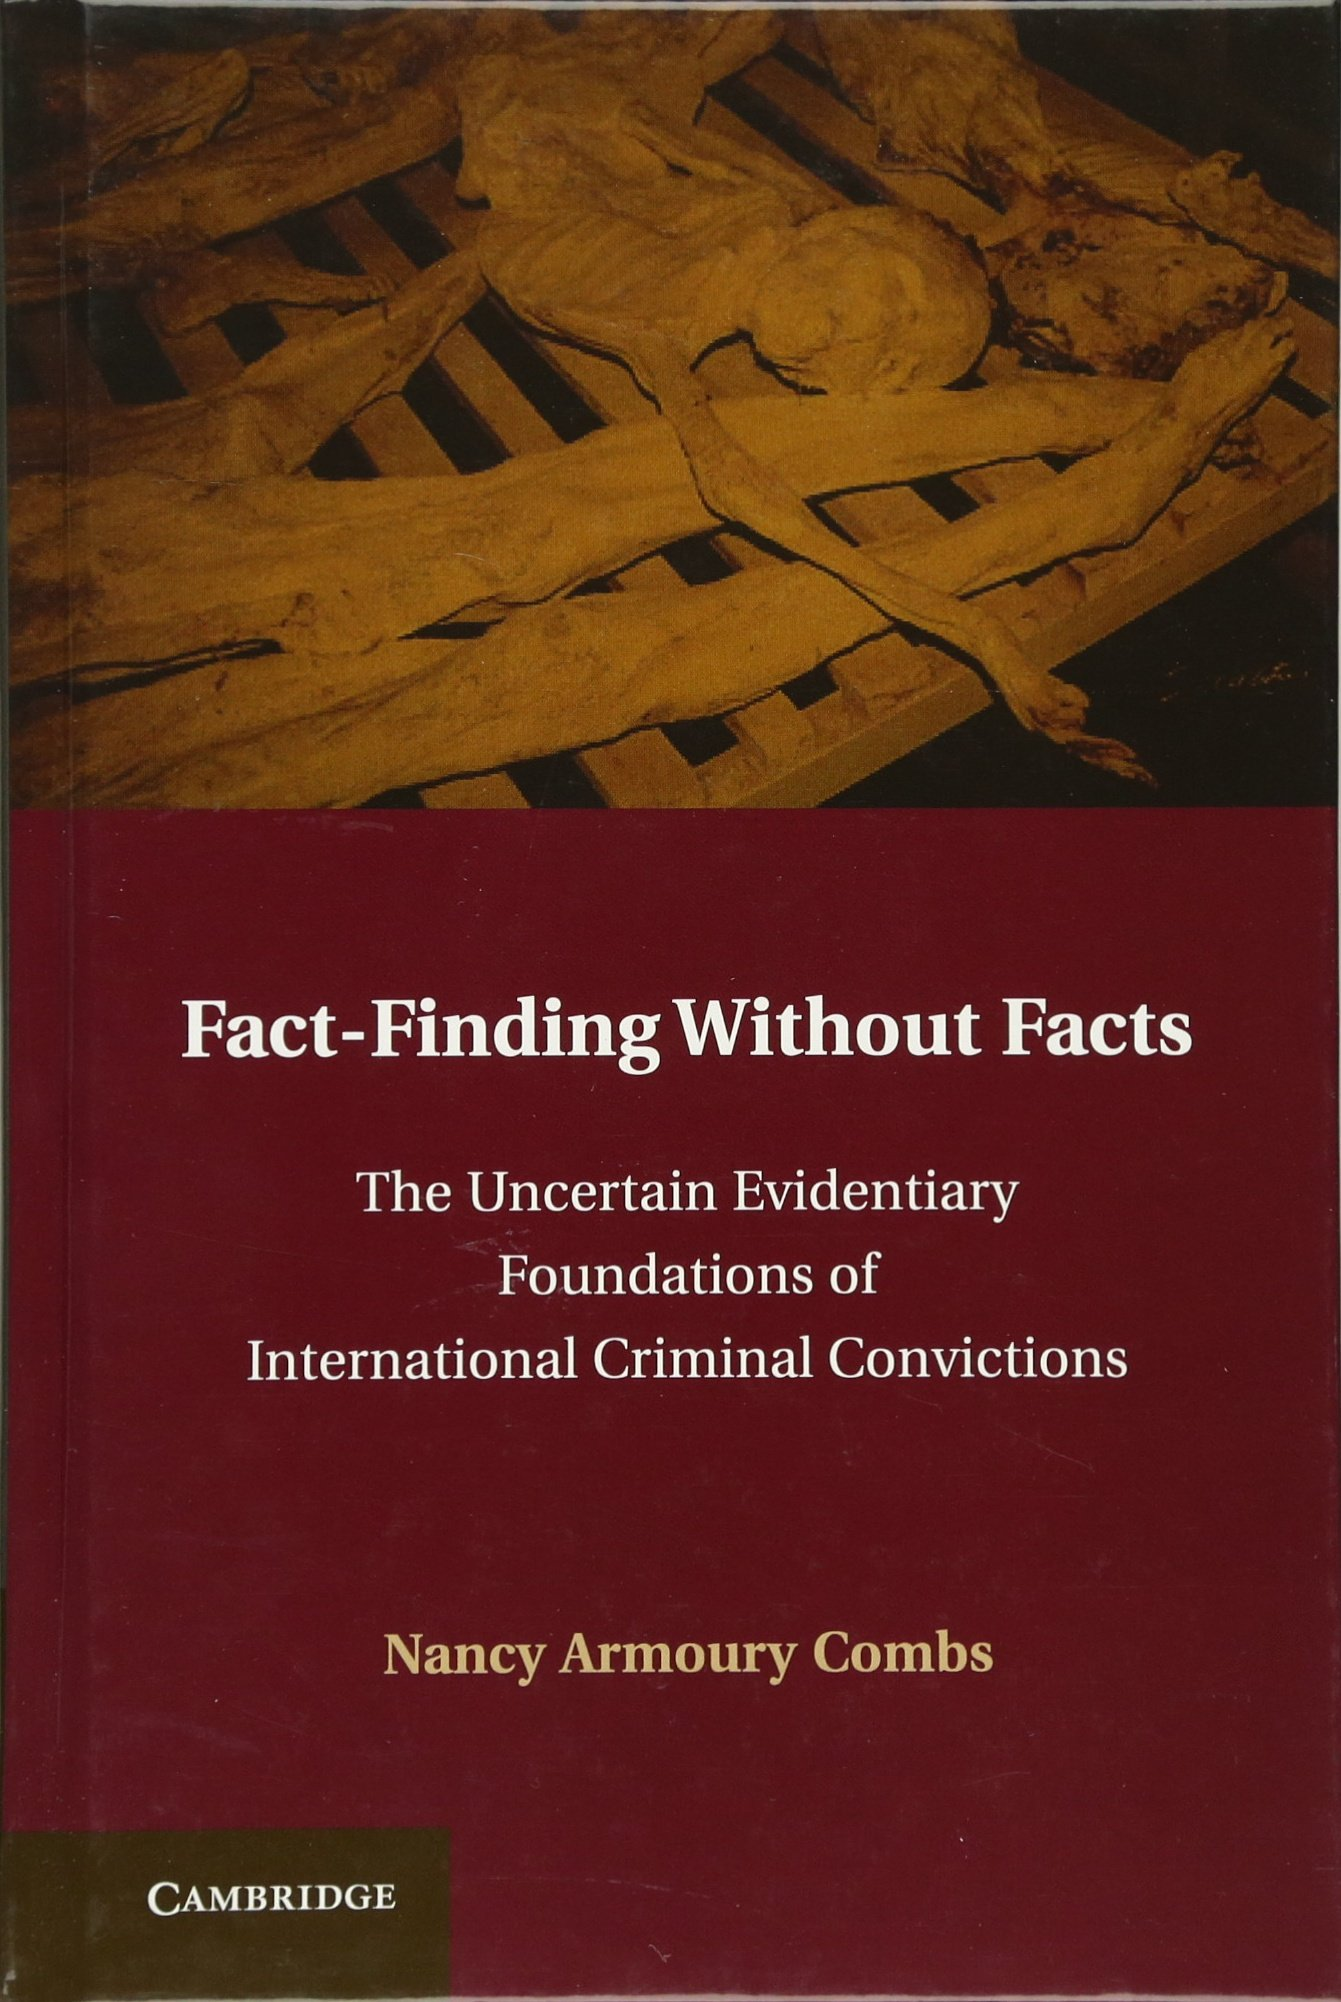 Fact-Finding Without Facts